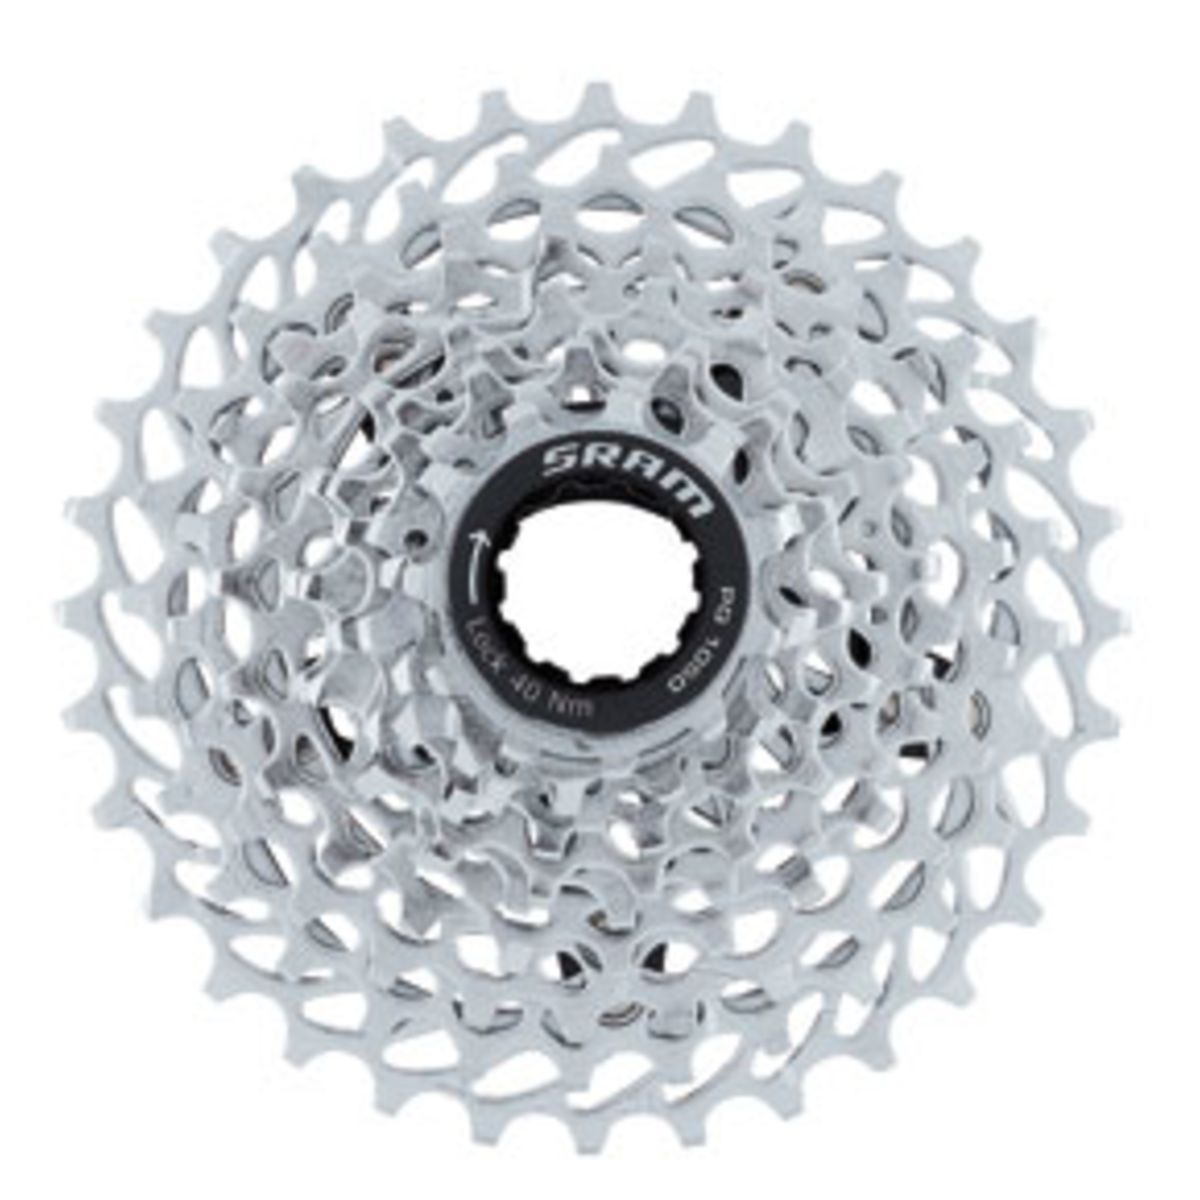 PG 1050 10-speed cassette